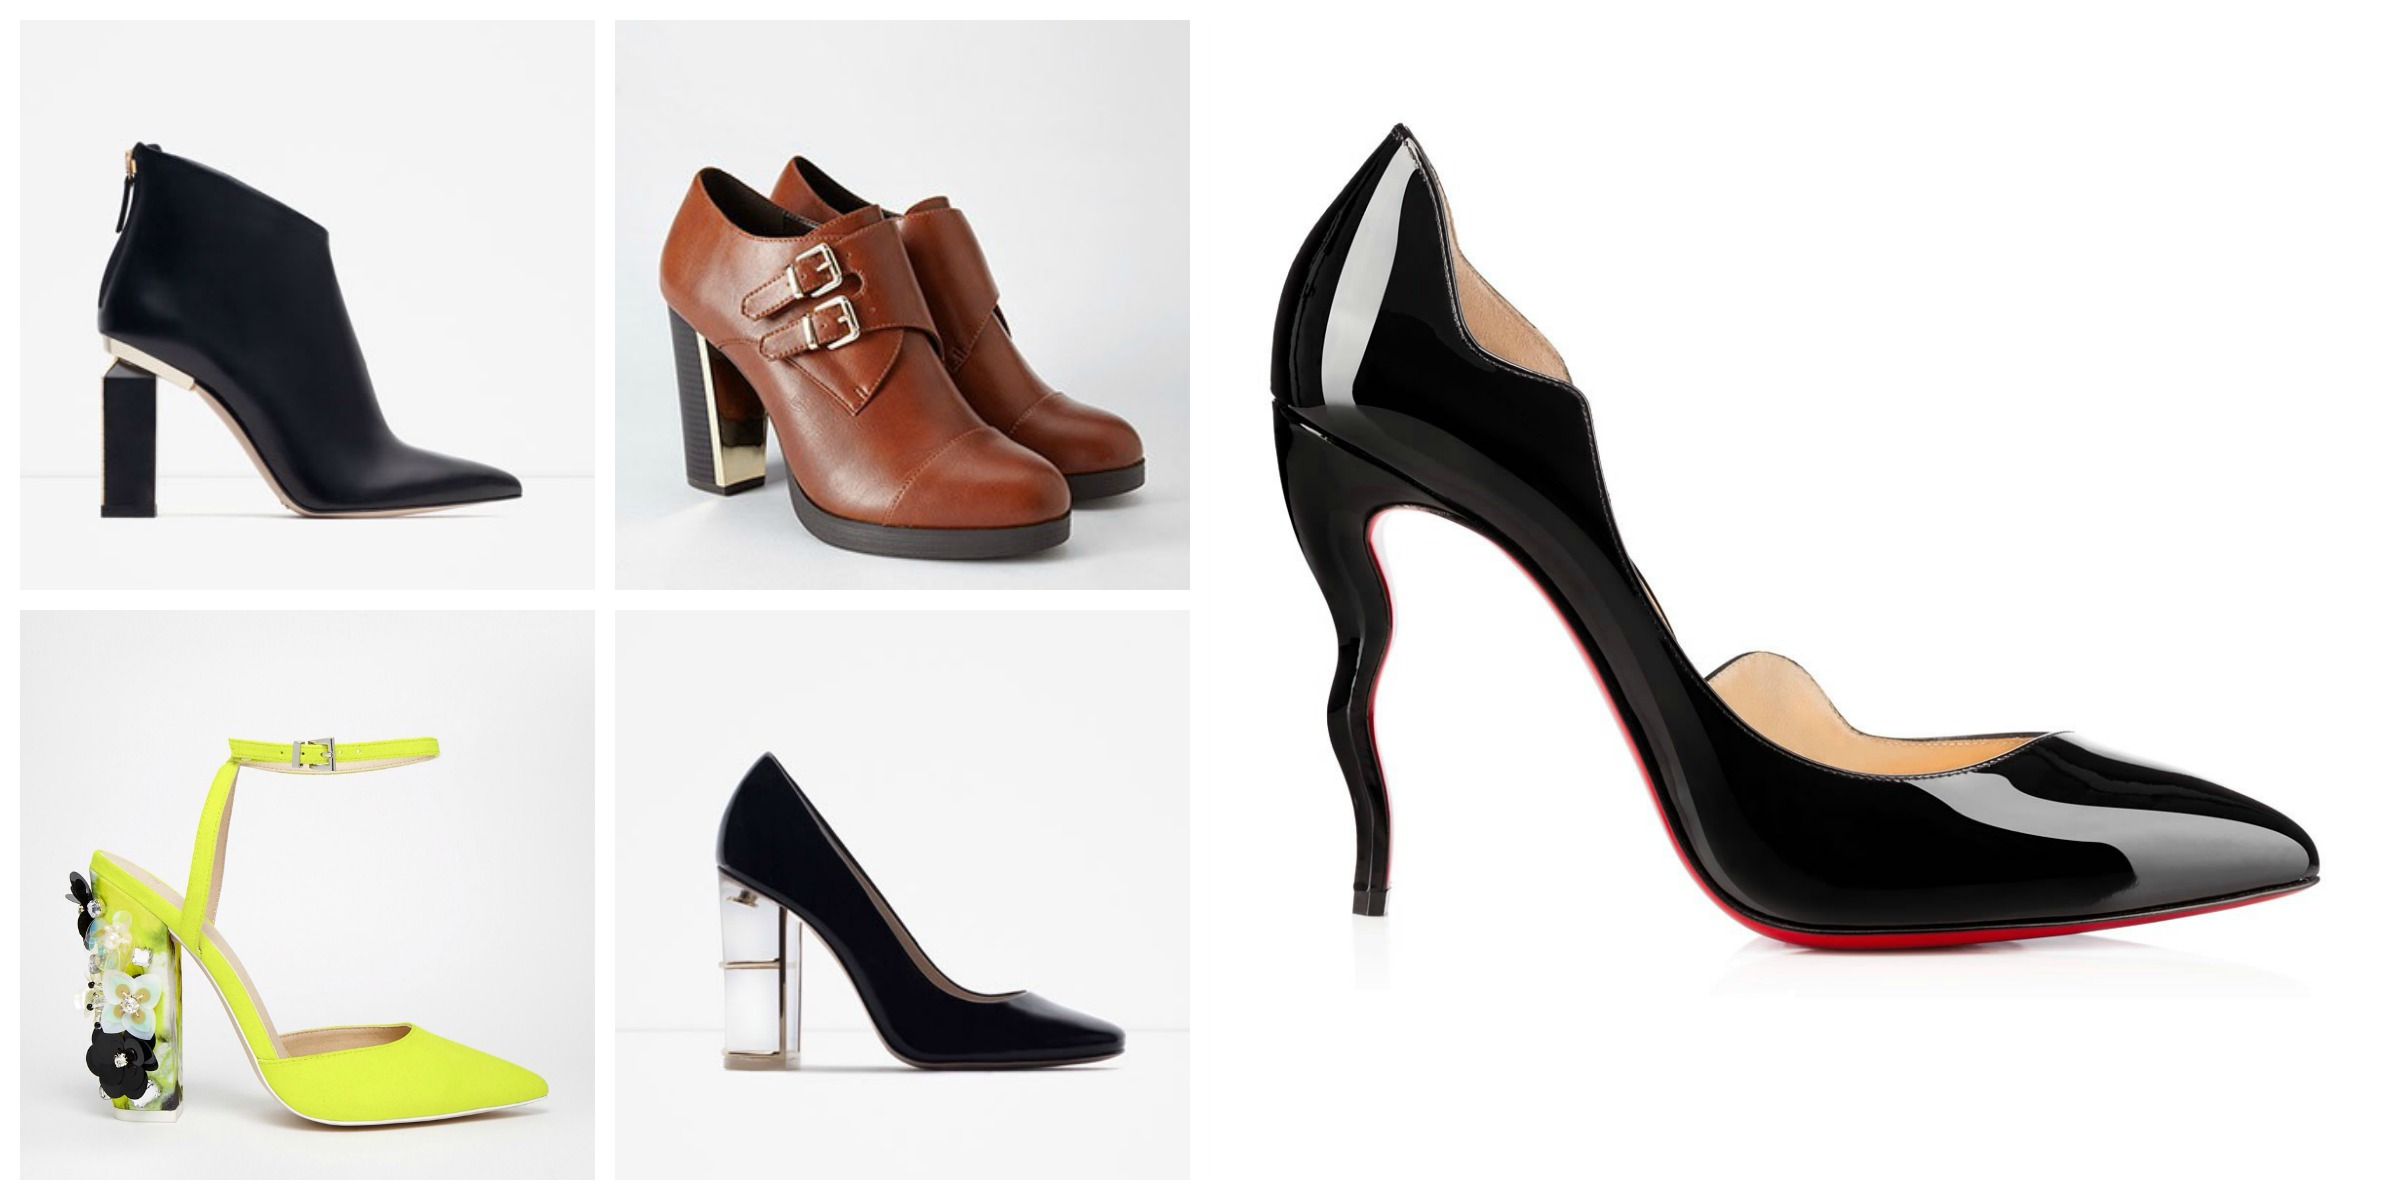 Top two :  Zara Metal Heeled Boots  and  Forever 21 Buckled Metallic-Heel Bootie  (a steal!)   Bottom two :  ASOS Performer Pointed High Heels  and  Zara Court Shoes     And just for fun :  Christian Louboutin Dalida Pumps